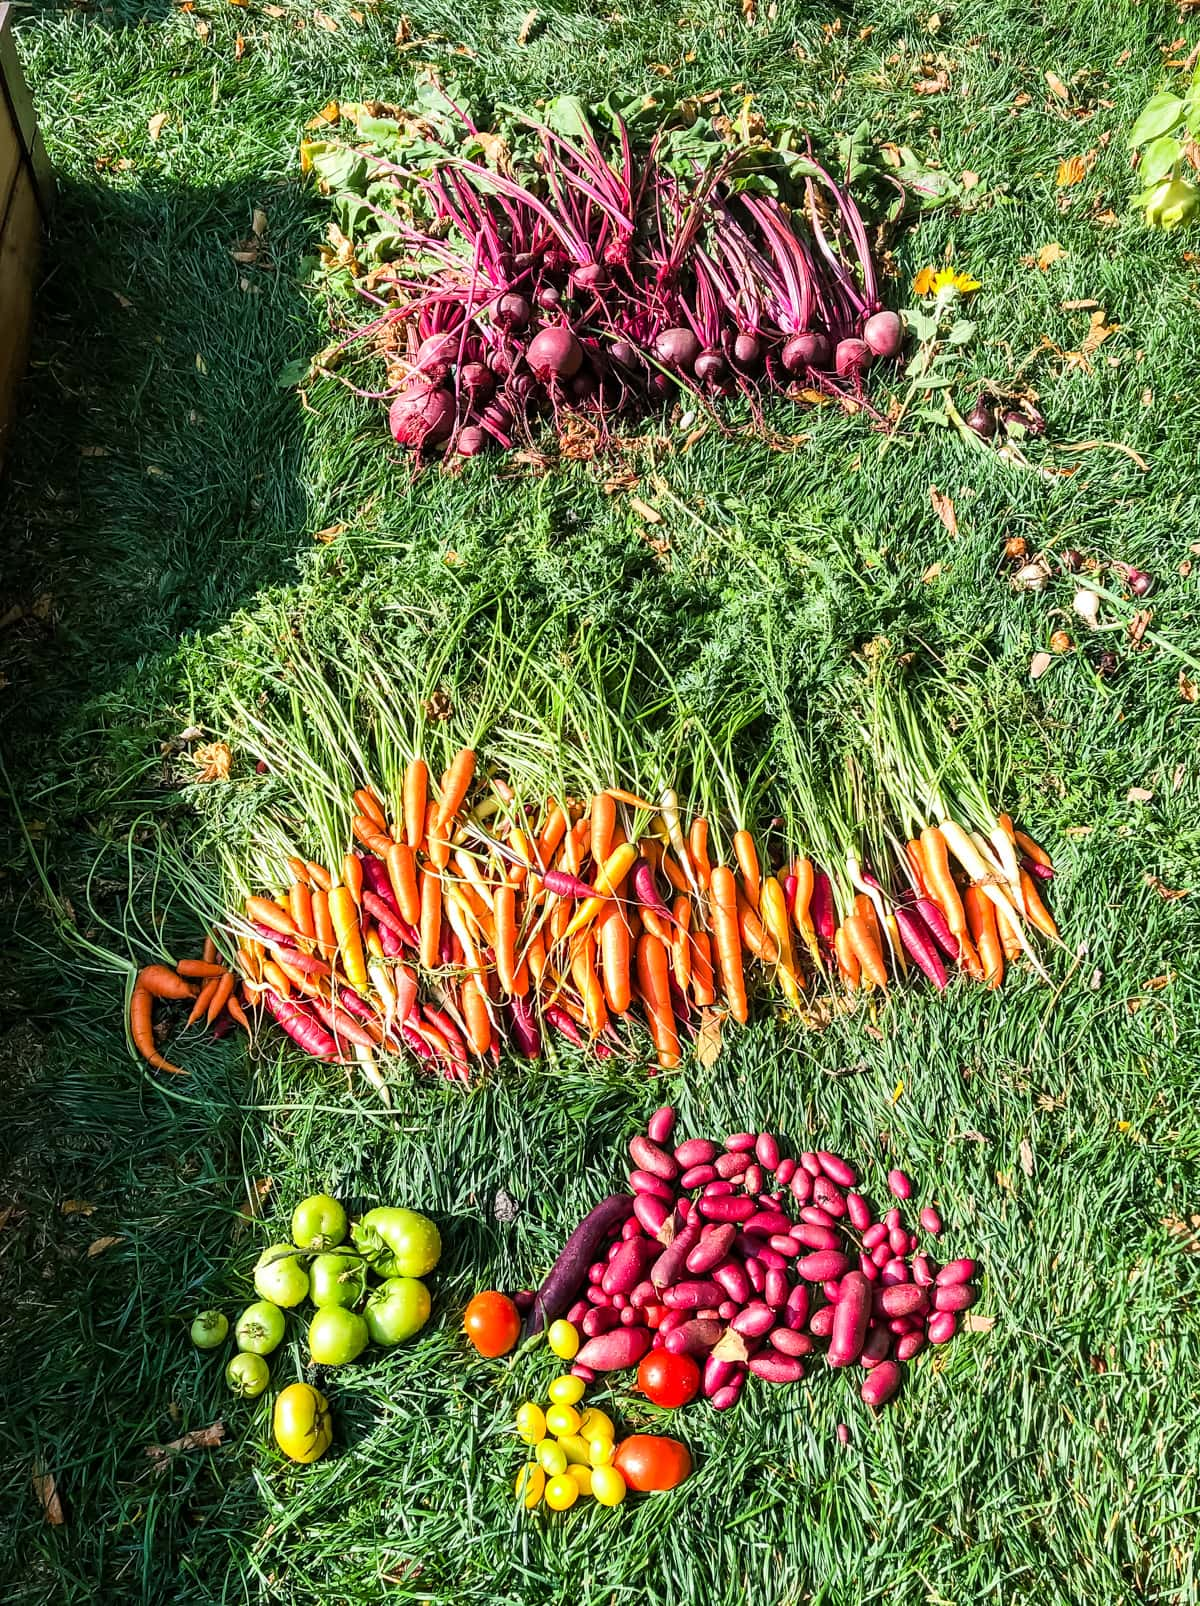 fresh picked carrots, beets, onions and potatoes laying on grass